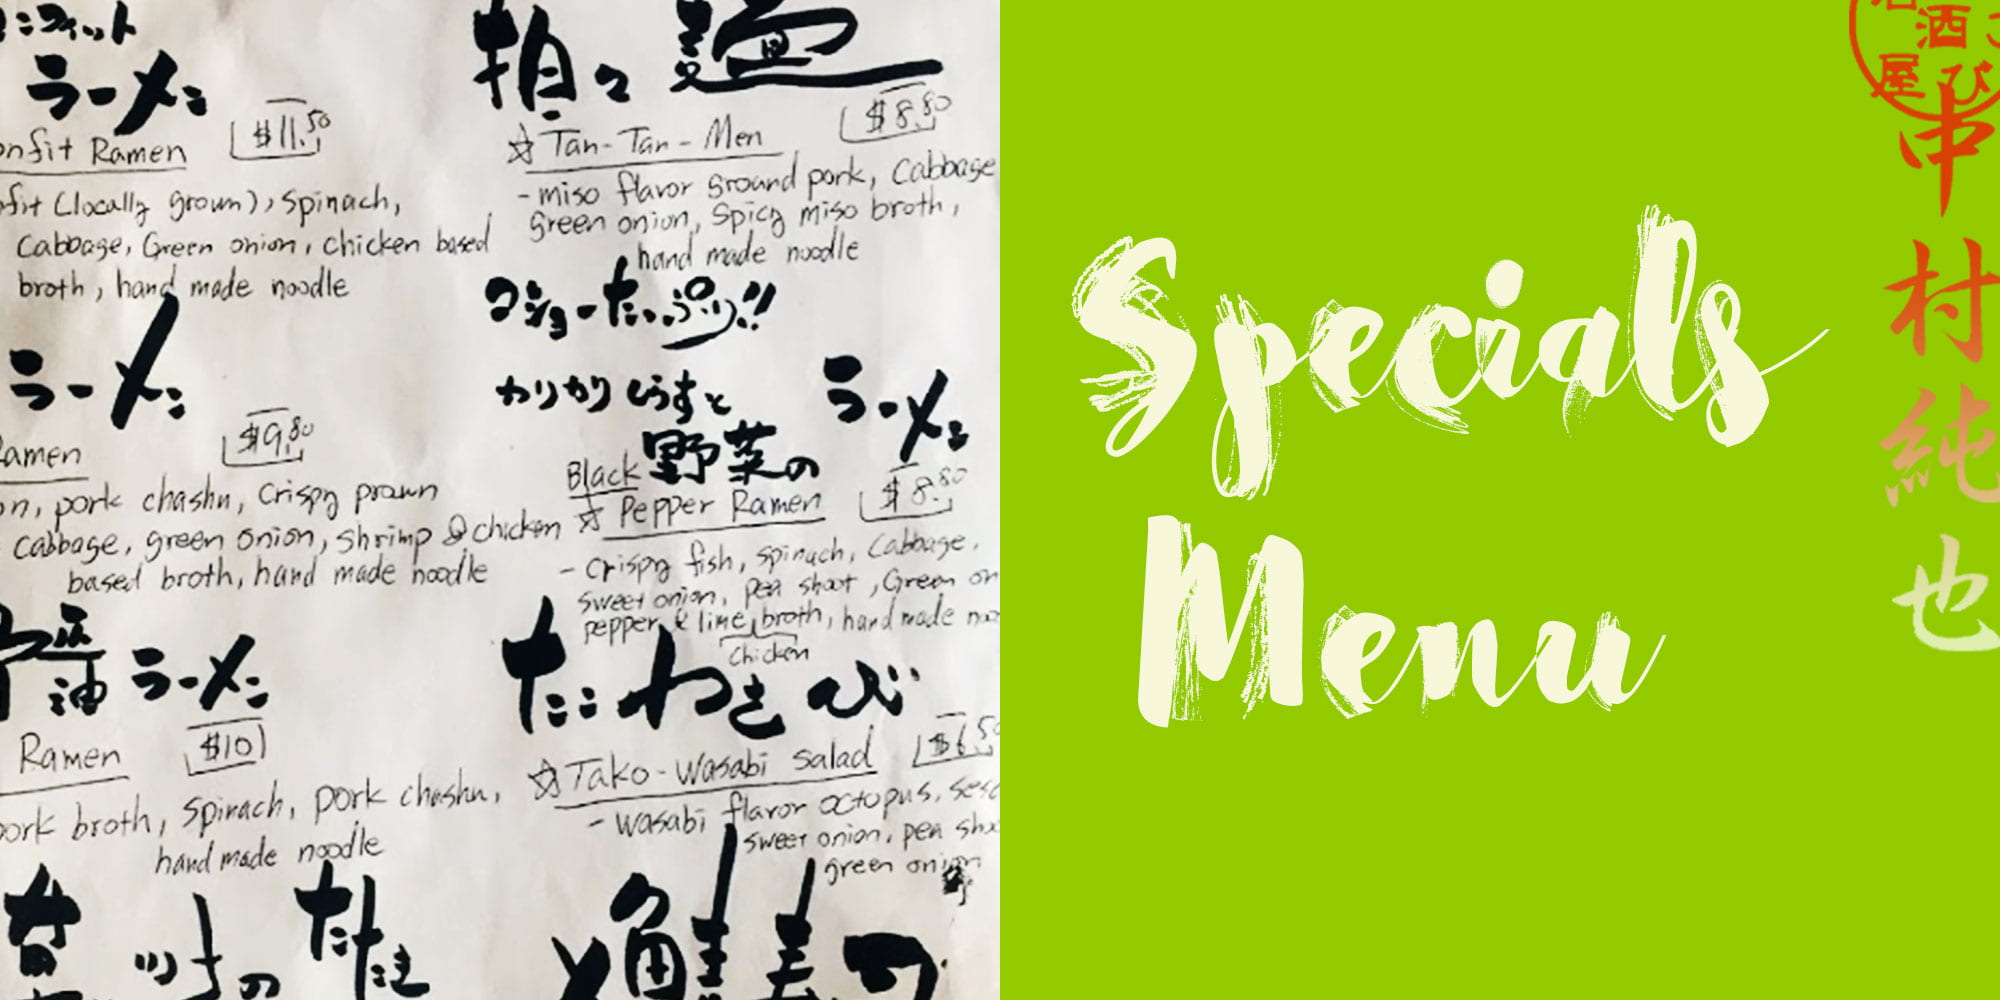 Specials Menu for Wasabi Ramen and Izakaya in Kelowna, BC